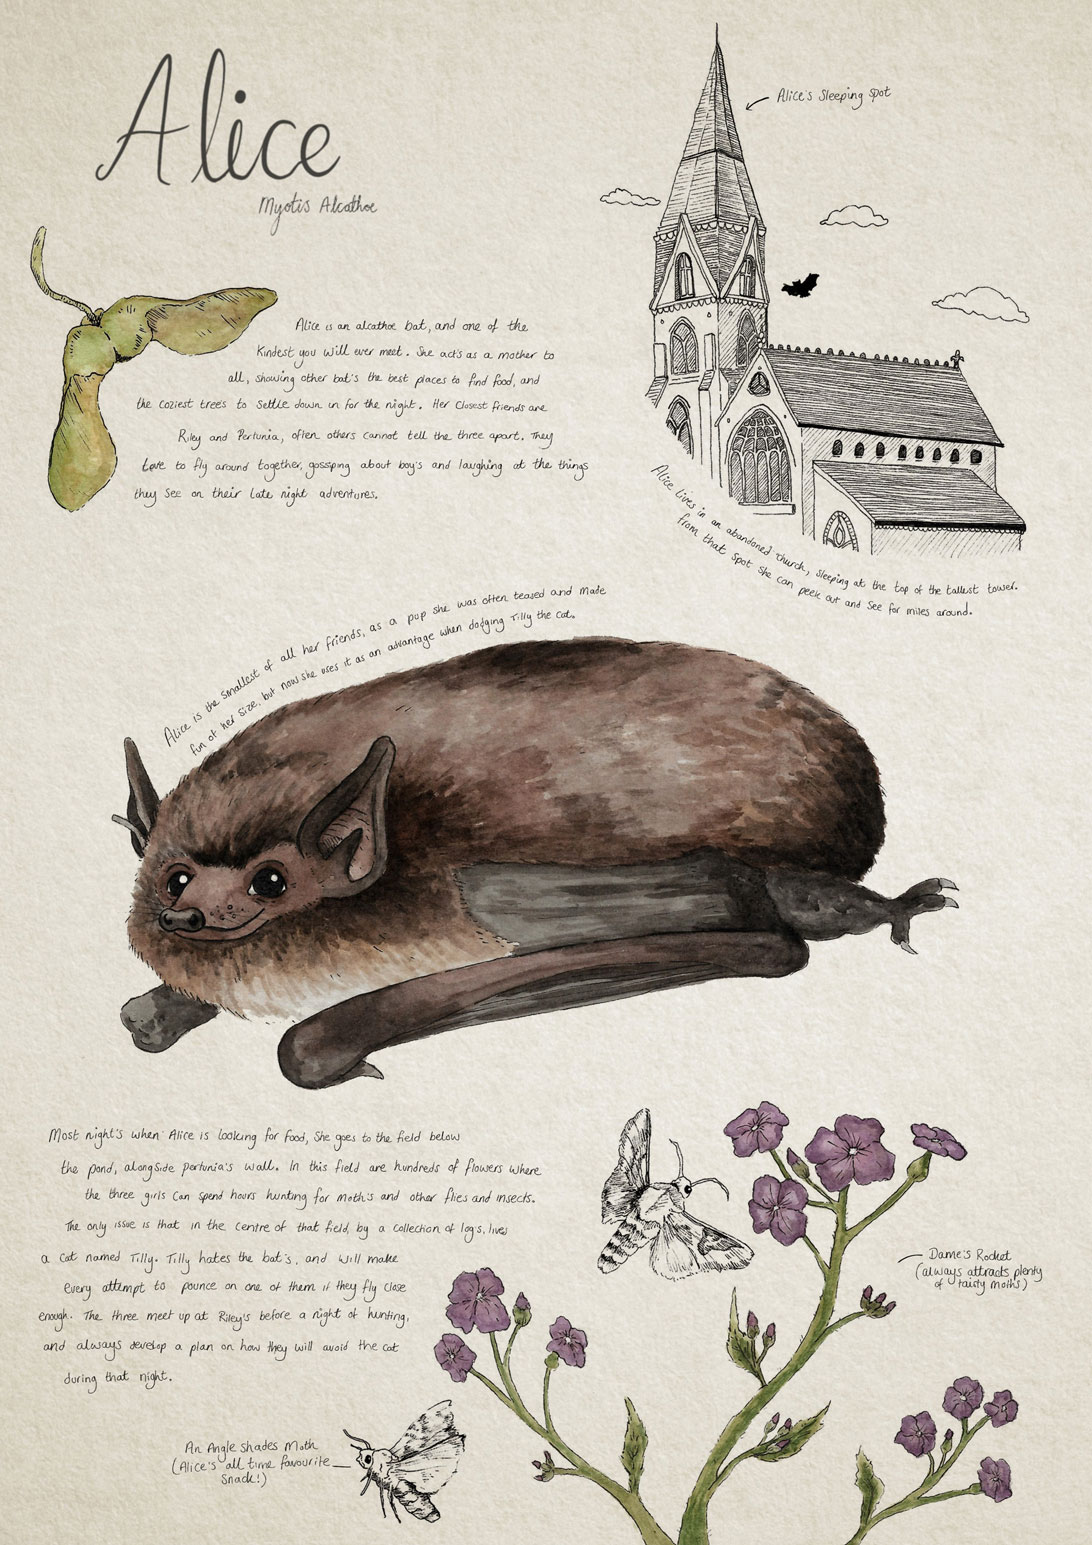 illustration and handwritten text information about the Alice bat